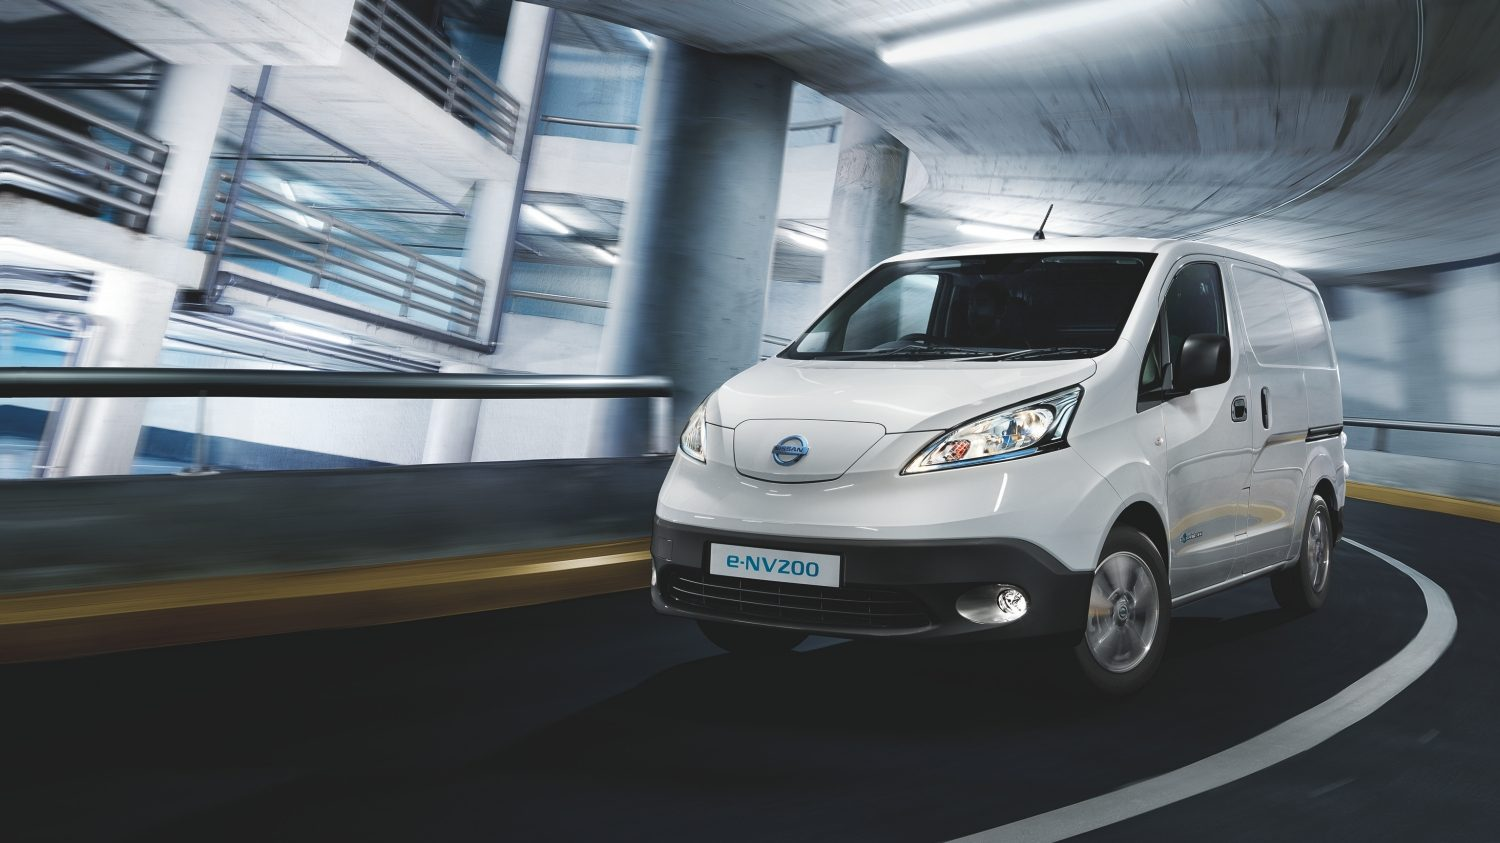 Nissan e-NV200 - Front angle of e-NV200 driving on curve